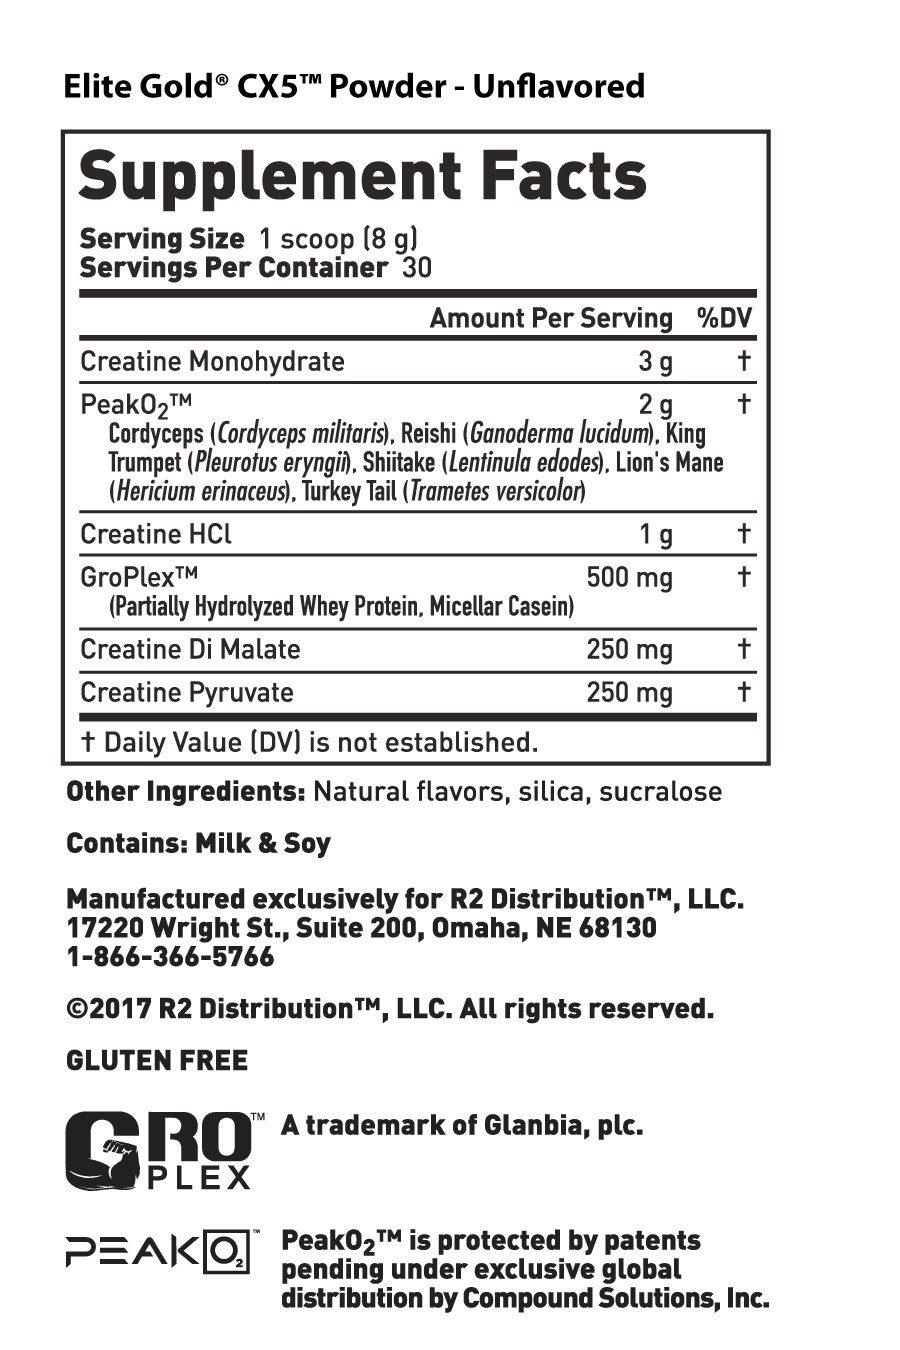 Elite Gold CX5 -Nutrition Facts